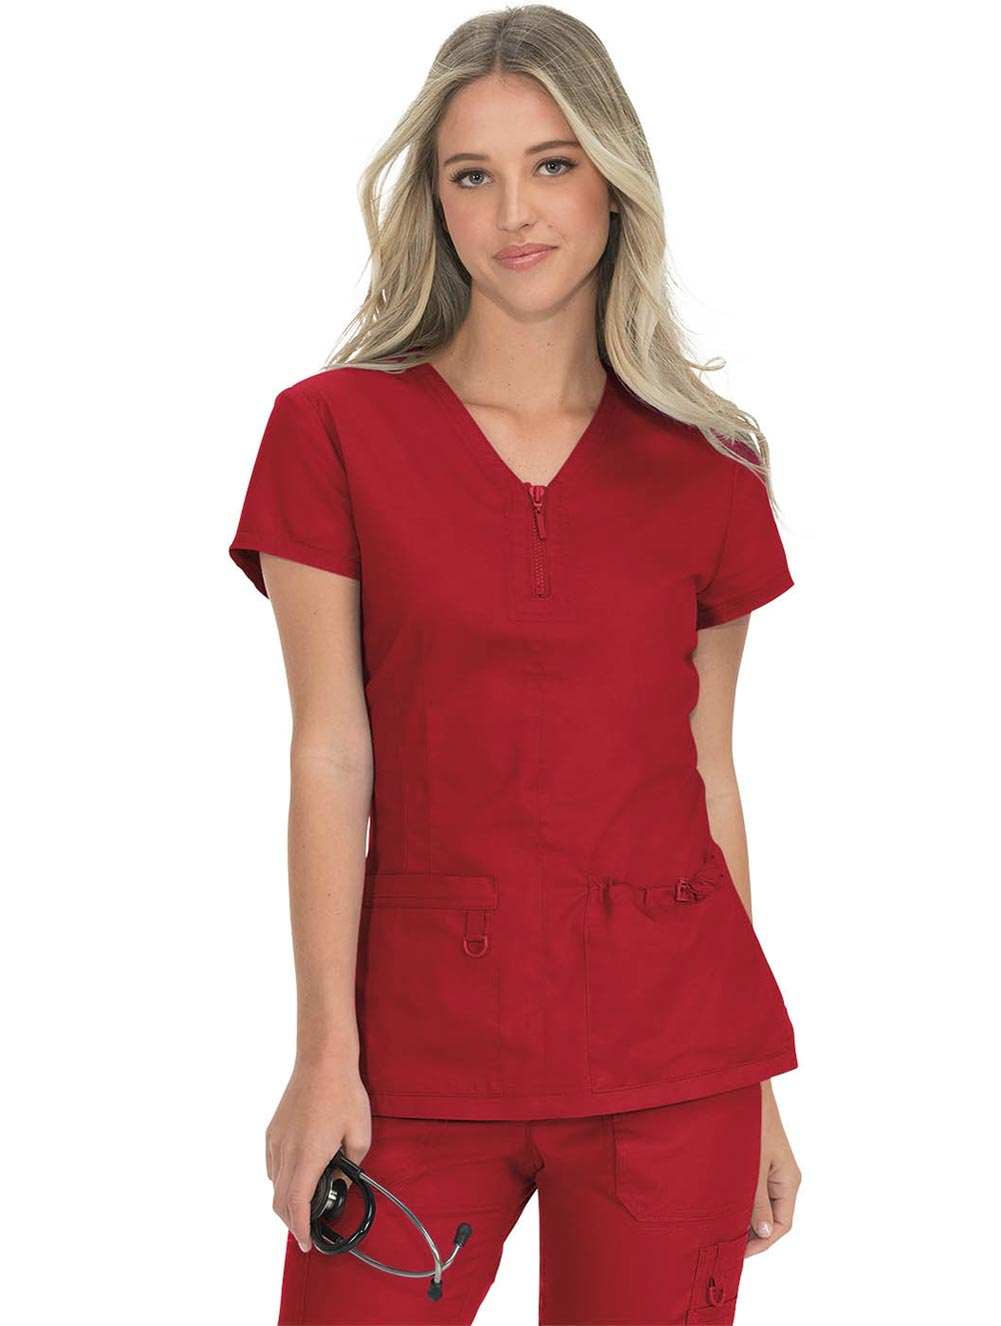 'Stretch' Women's Scrubs Mackenzie Top